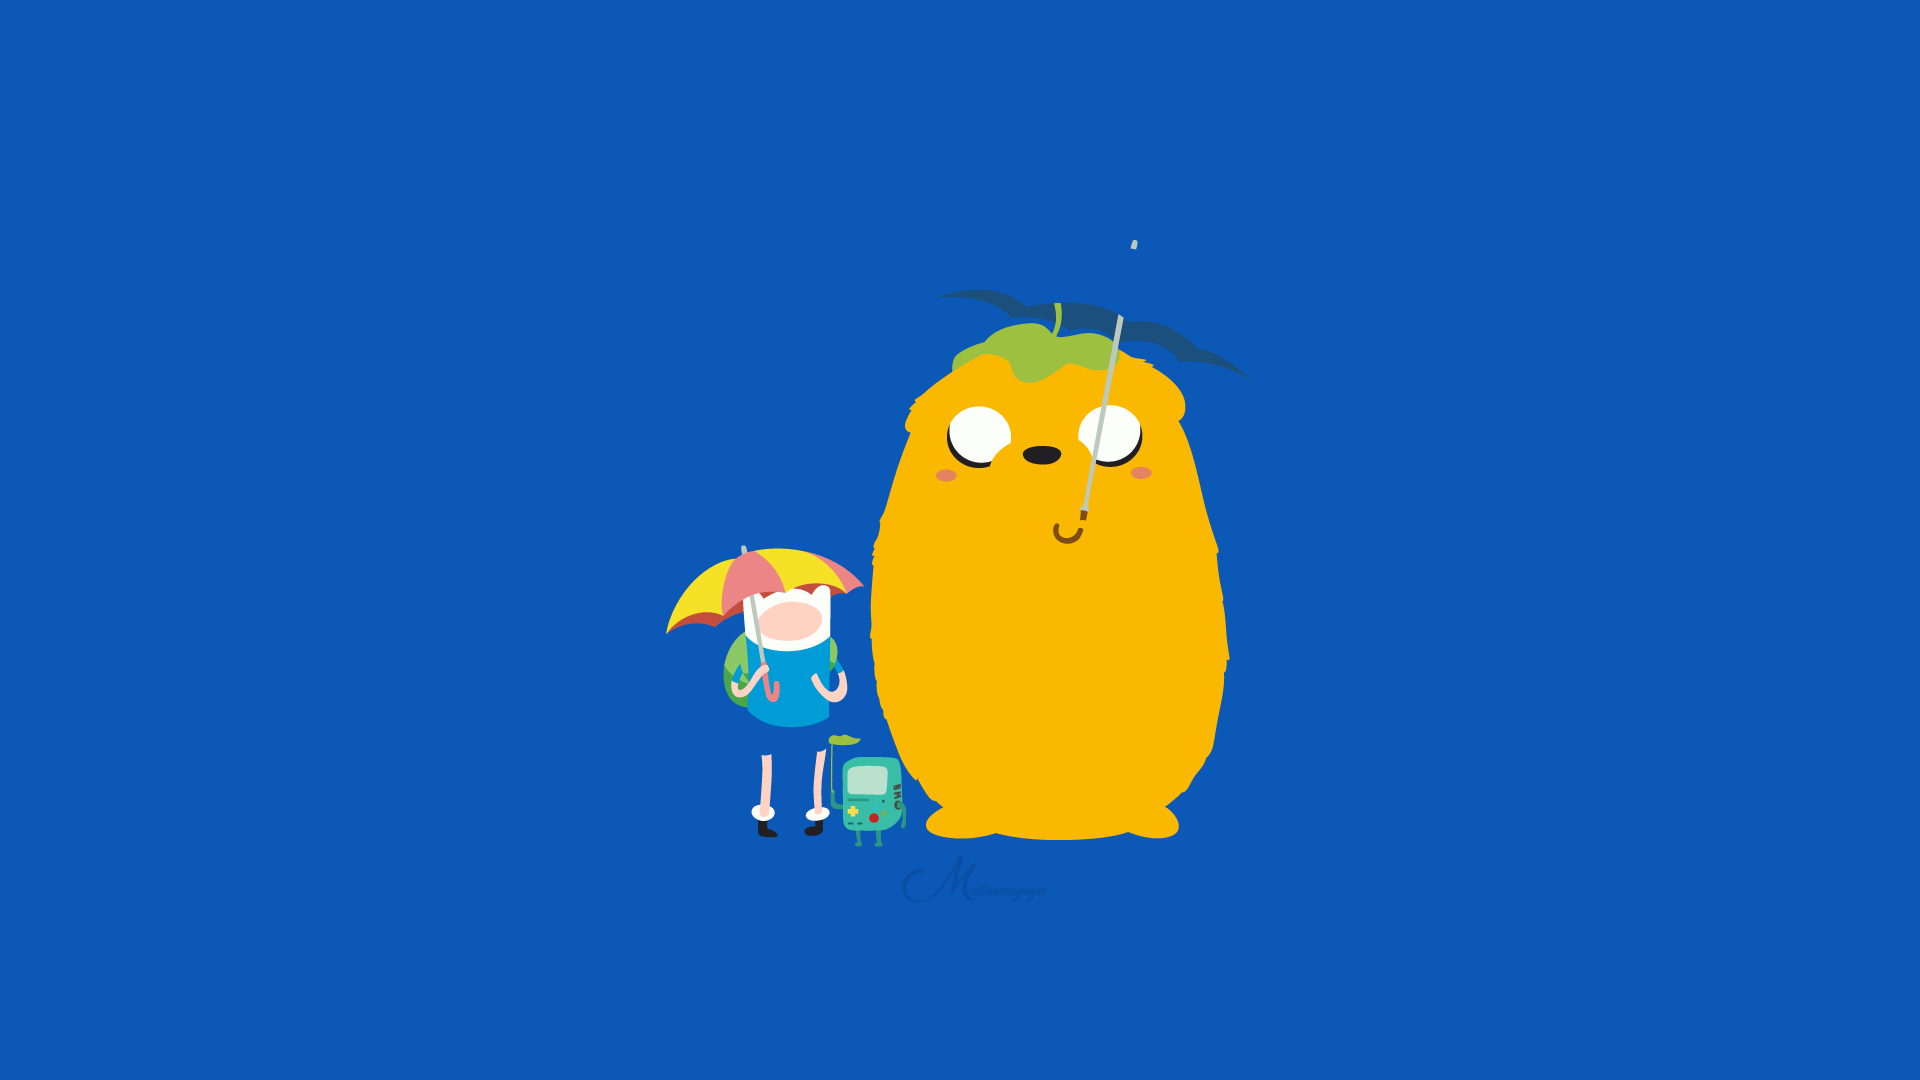 Finn Jake and BMO from Adventure Time HD Wallpaper Background 1920x1080